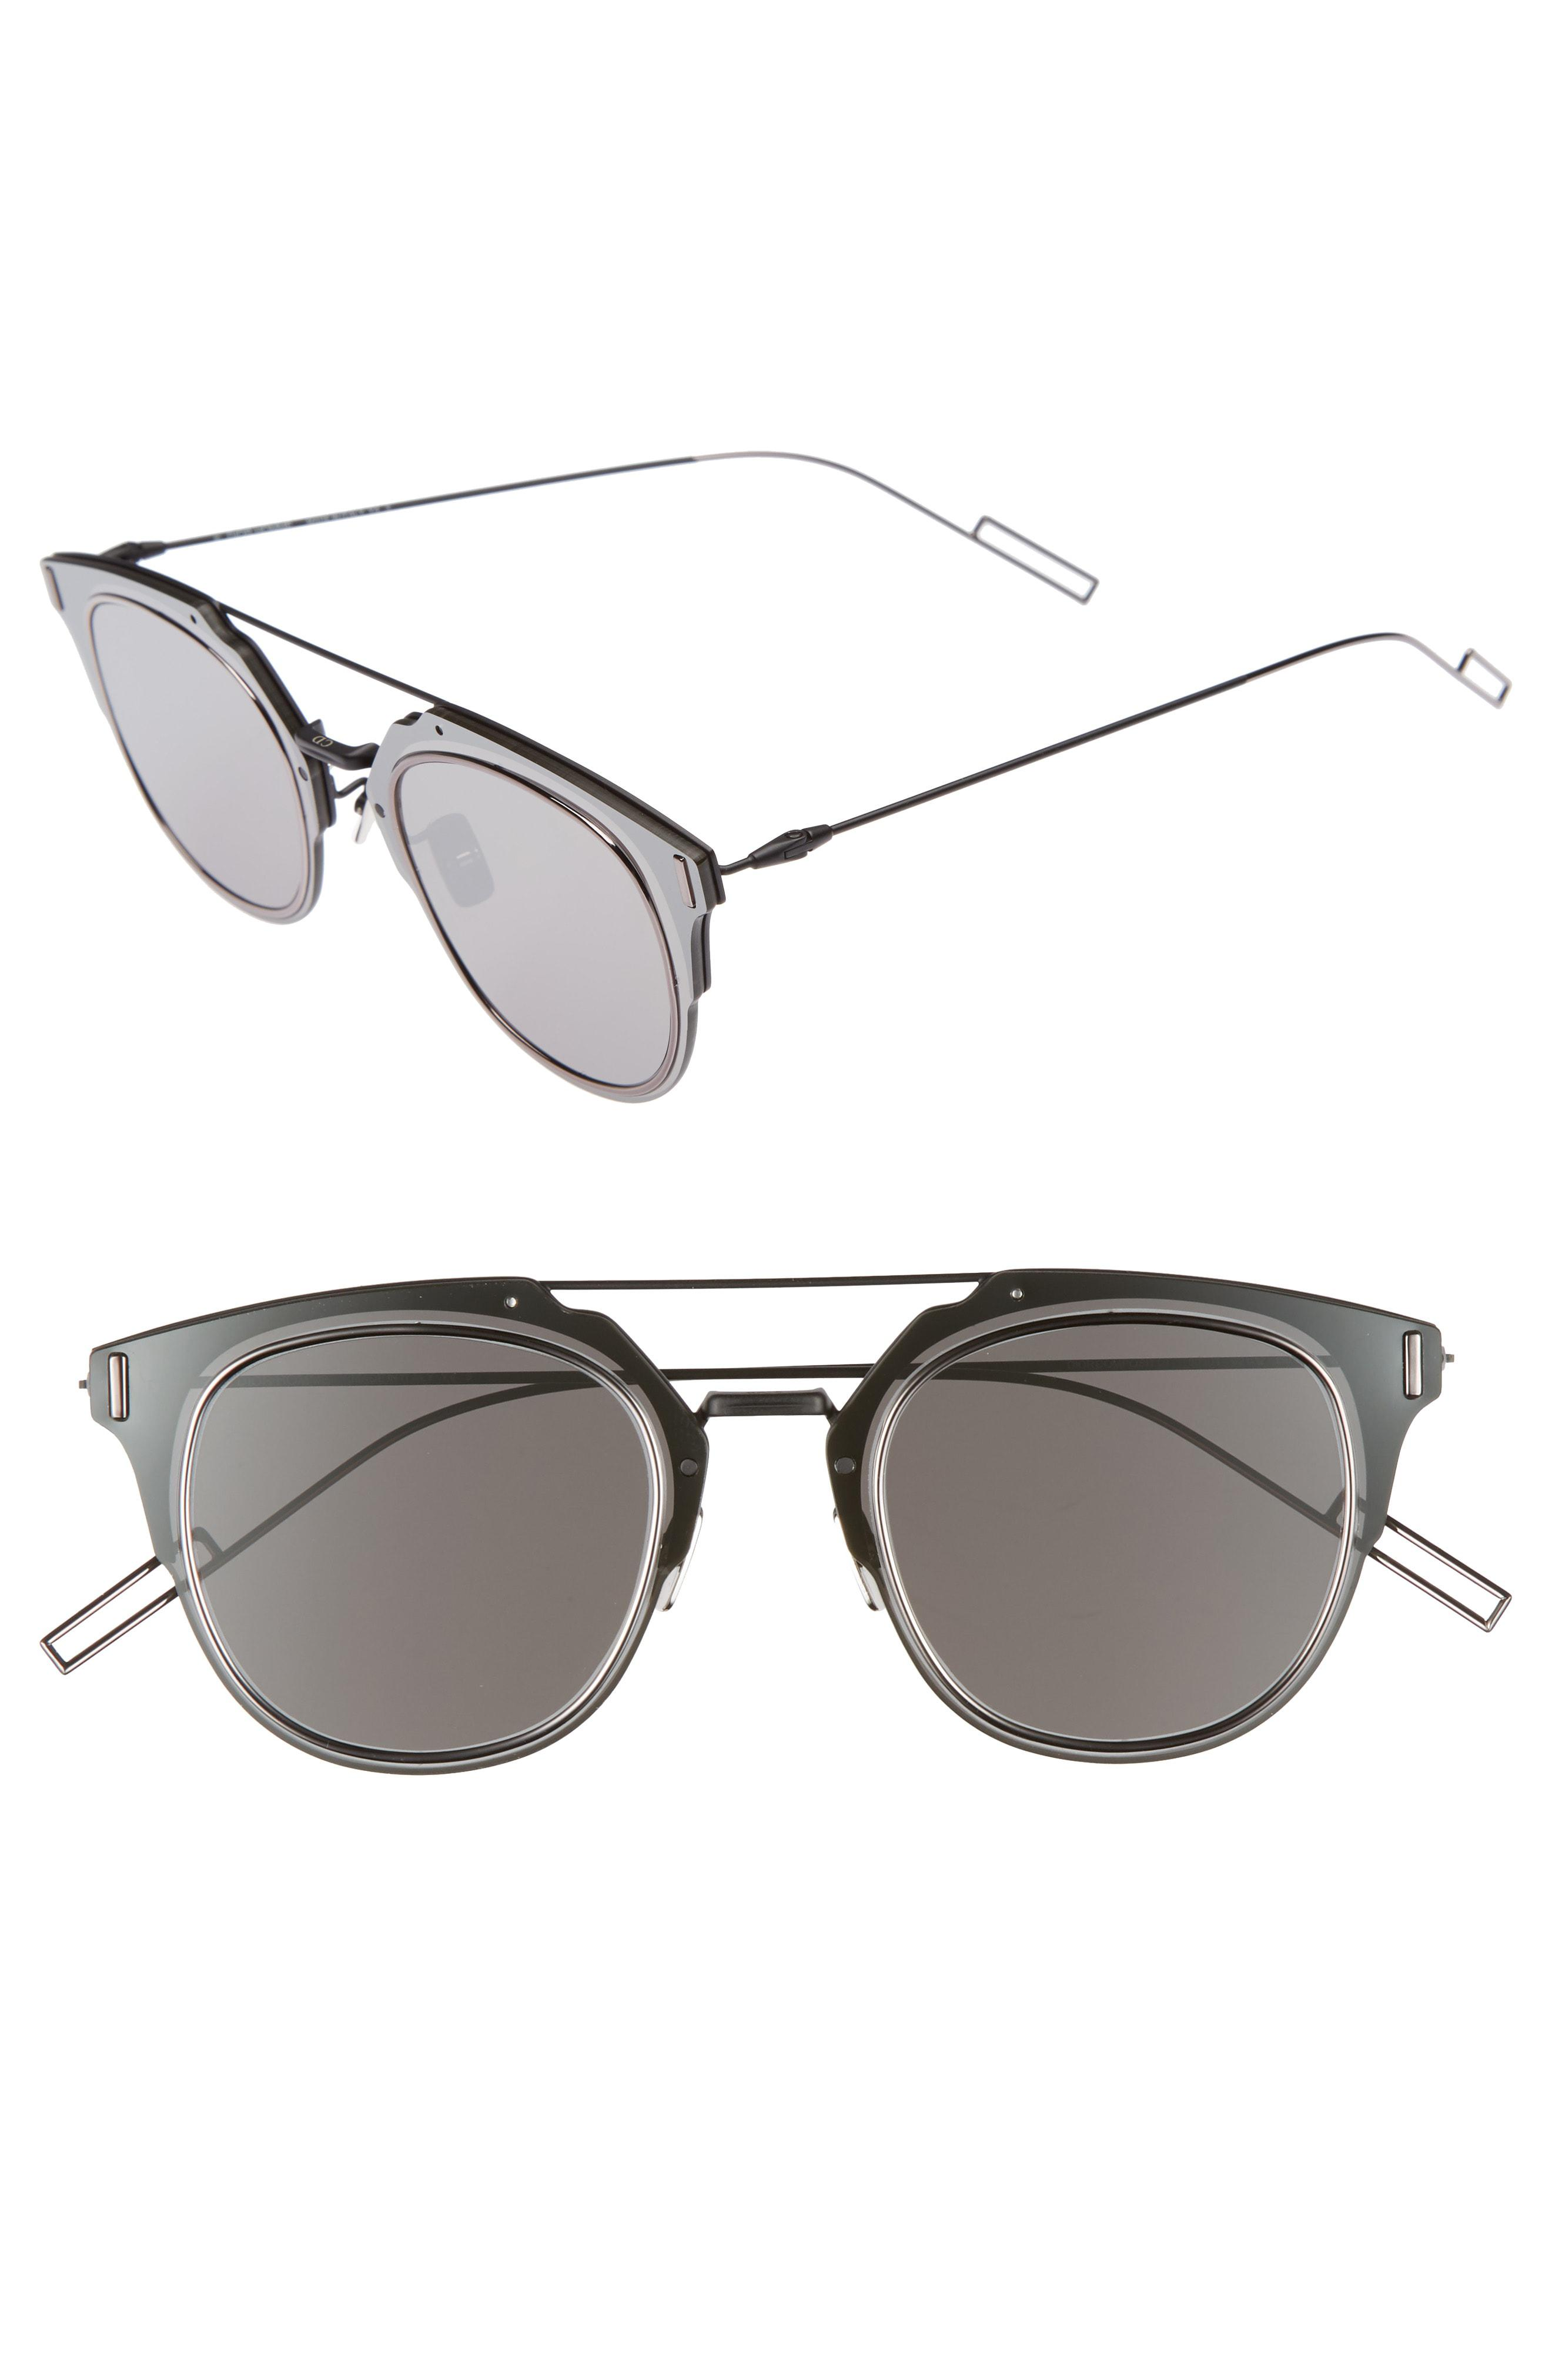 61c74137b9 Lyst - Dior  composit 1.0s  62mm Metal Shield Sunglasses - Oxford ...